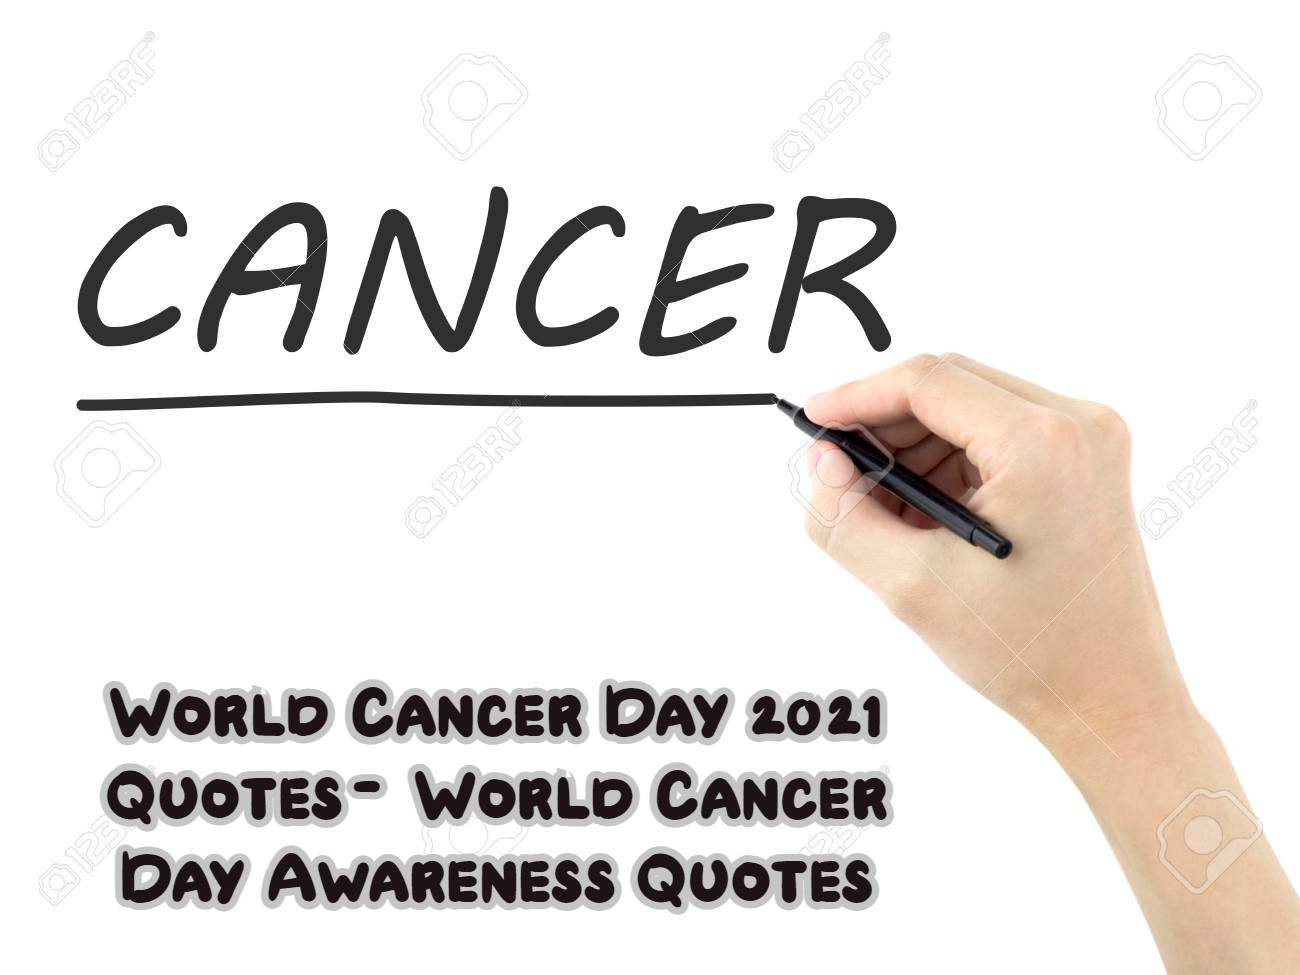 World Cancer Day 2021 Quotes